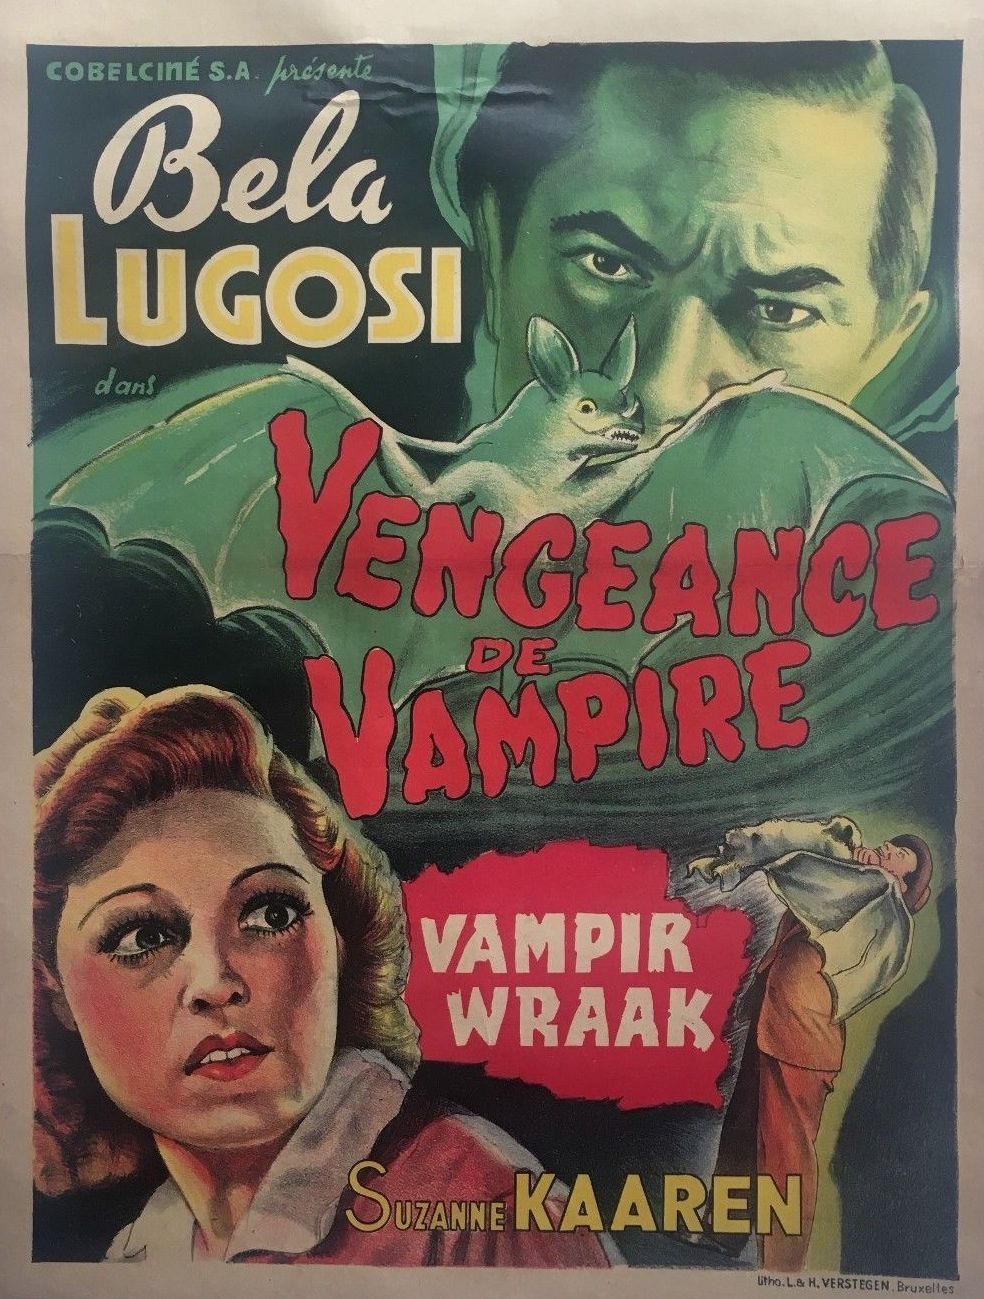 Bela Lugosi and Suzanne Kaaren in The Devil Bat (1940)